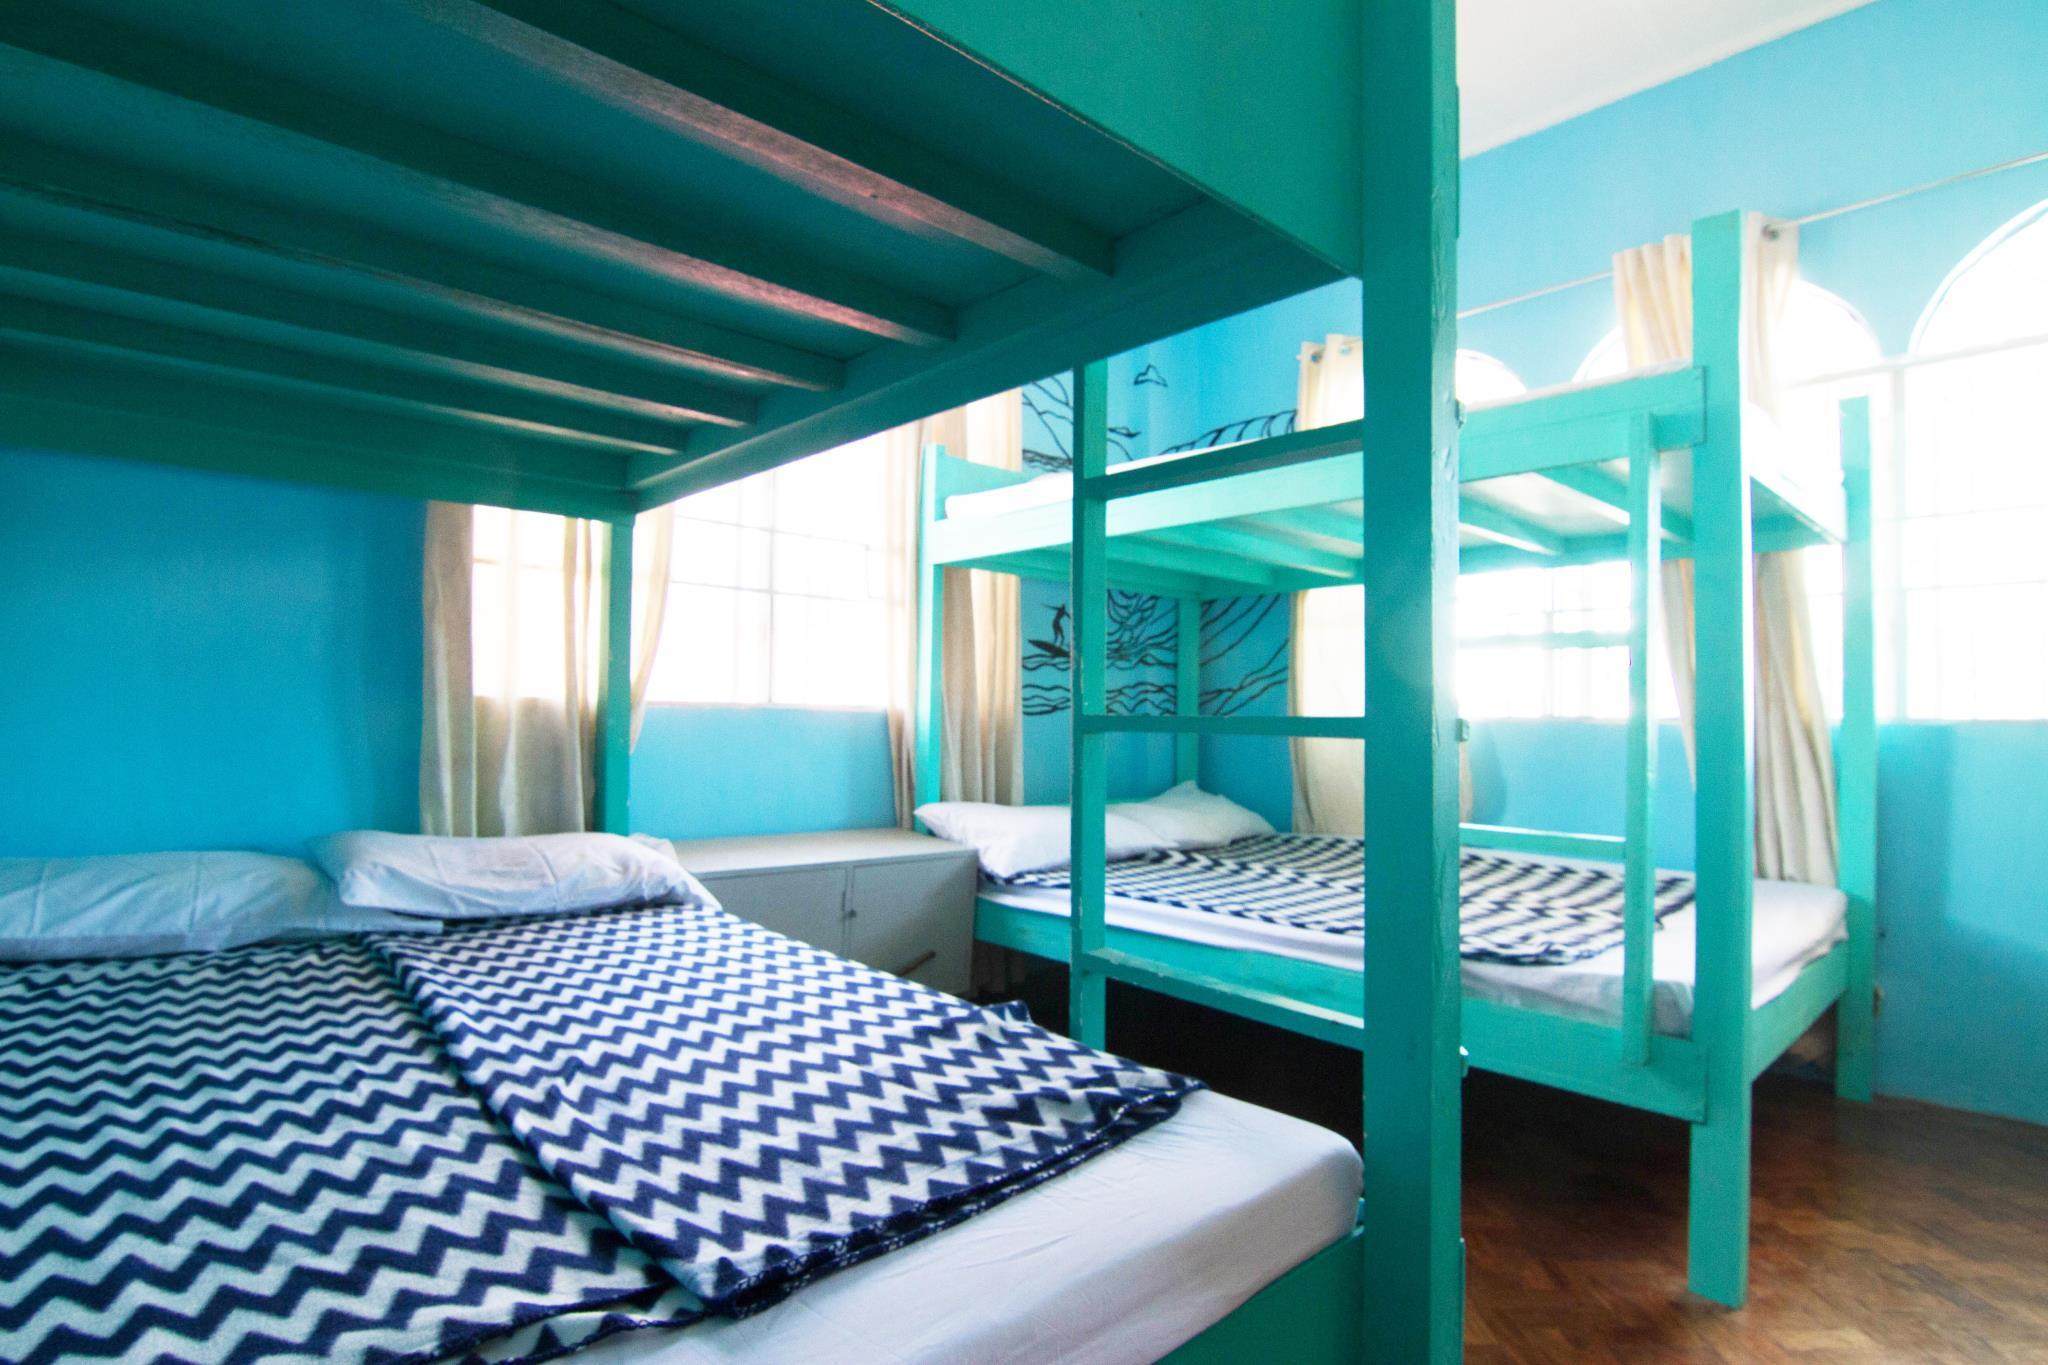 1 Double Bed in 4-Bed Dormitory - Mixed